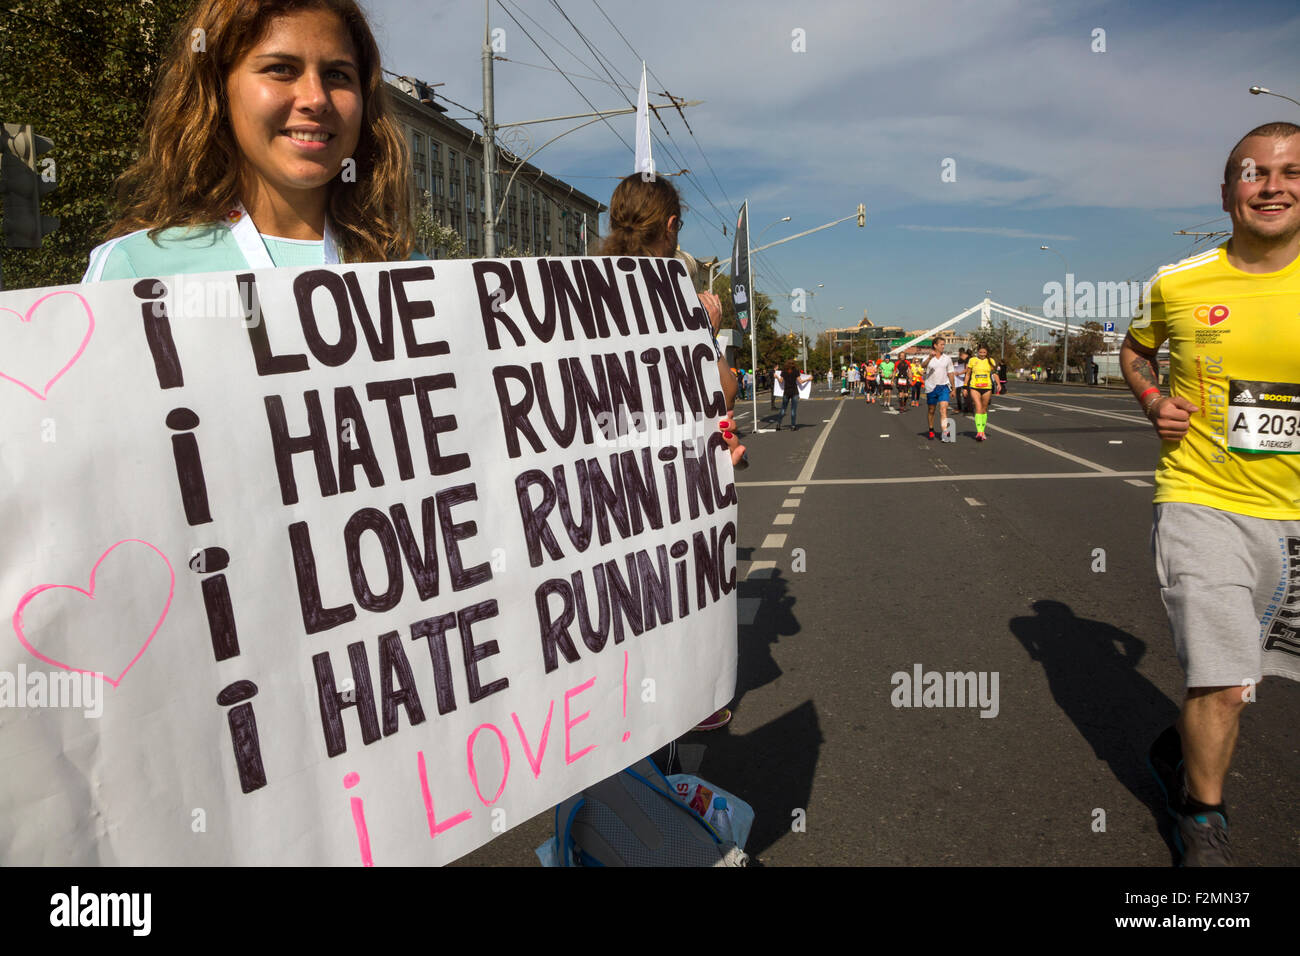 Moscow, Russia. 20th Sep, 2015. People support runners on a finish of the Moscow marathon near the sports complex - Stock Image